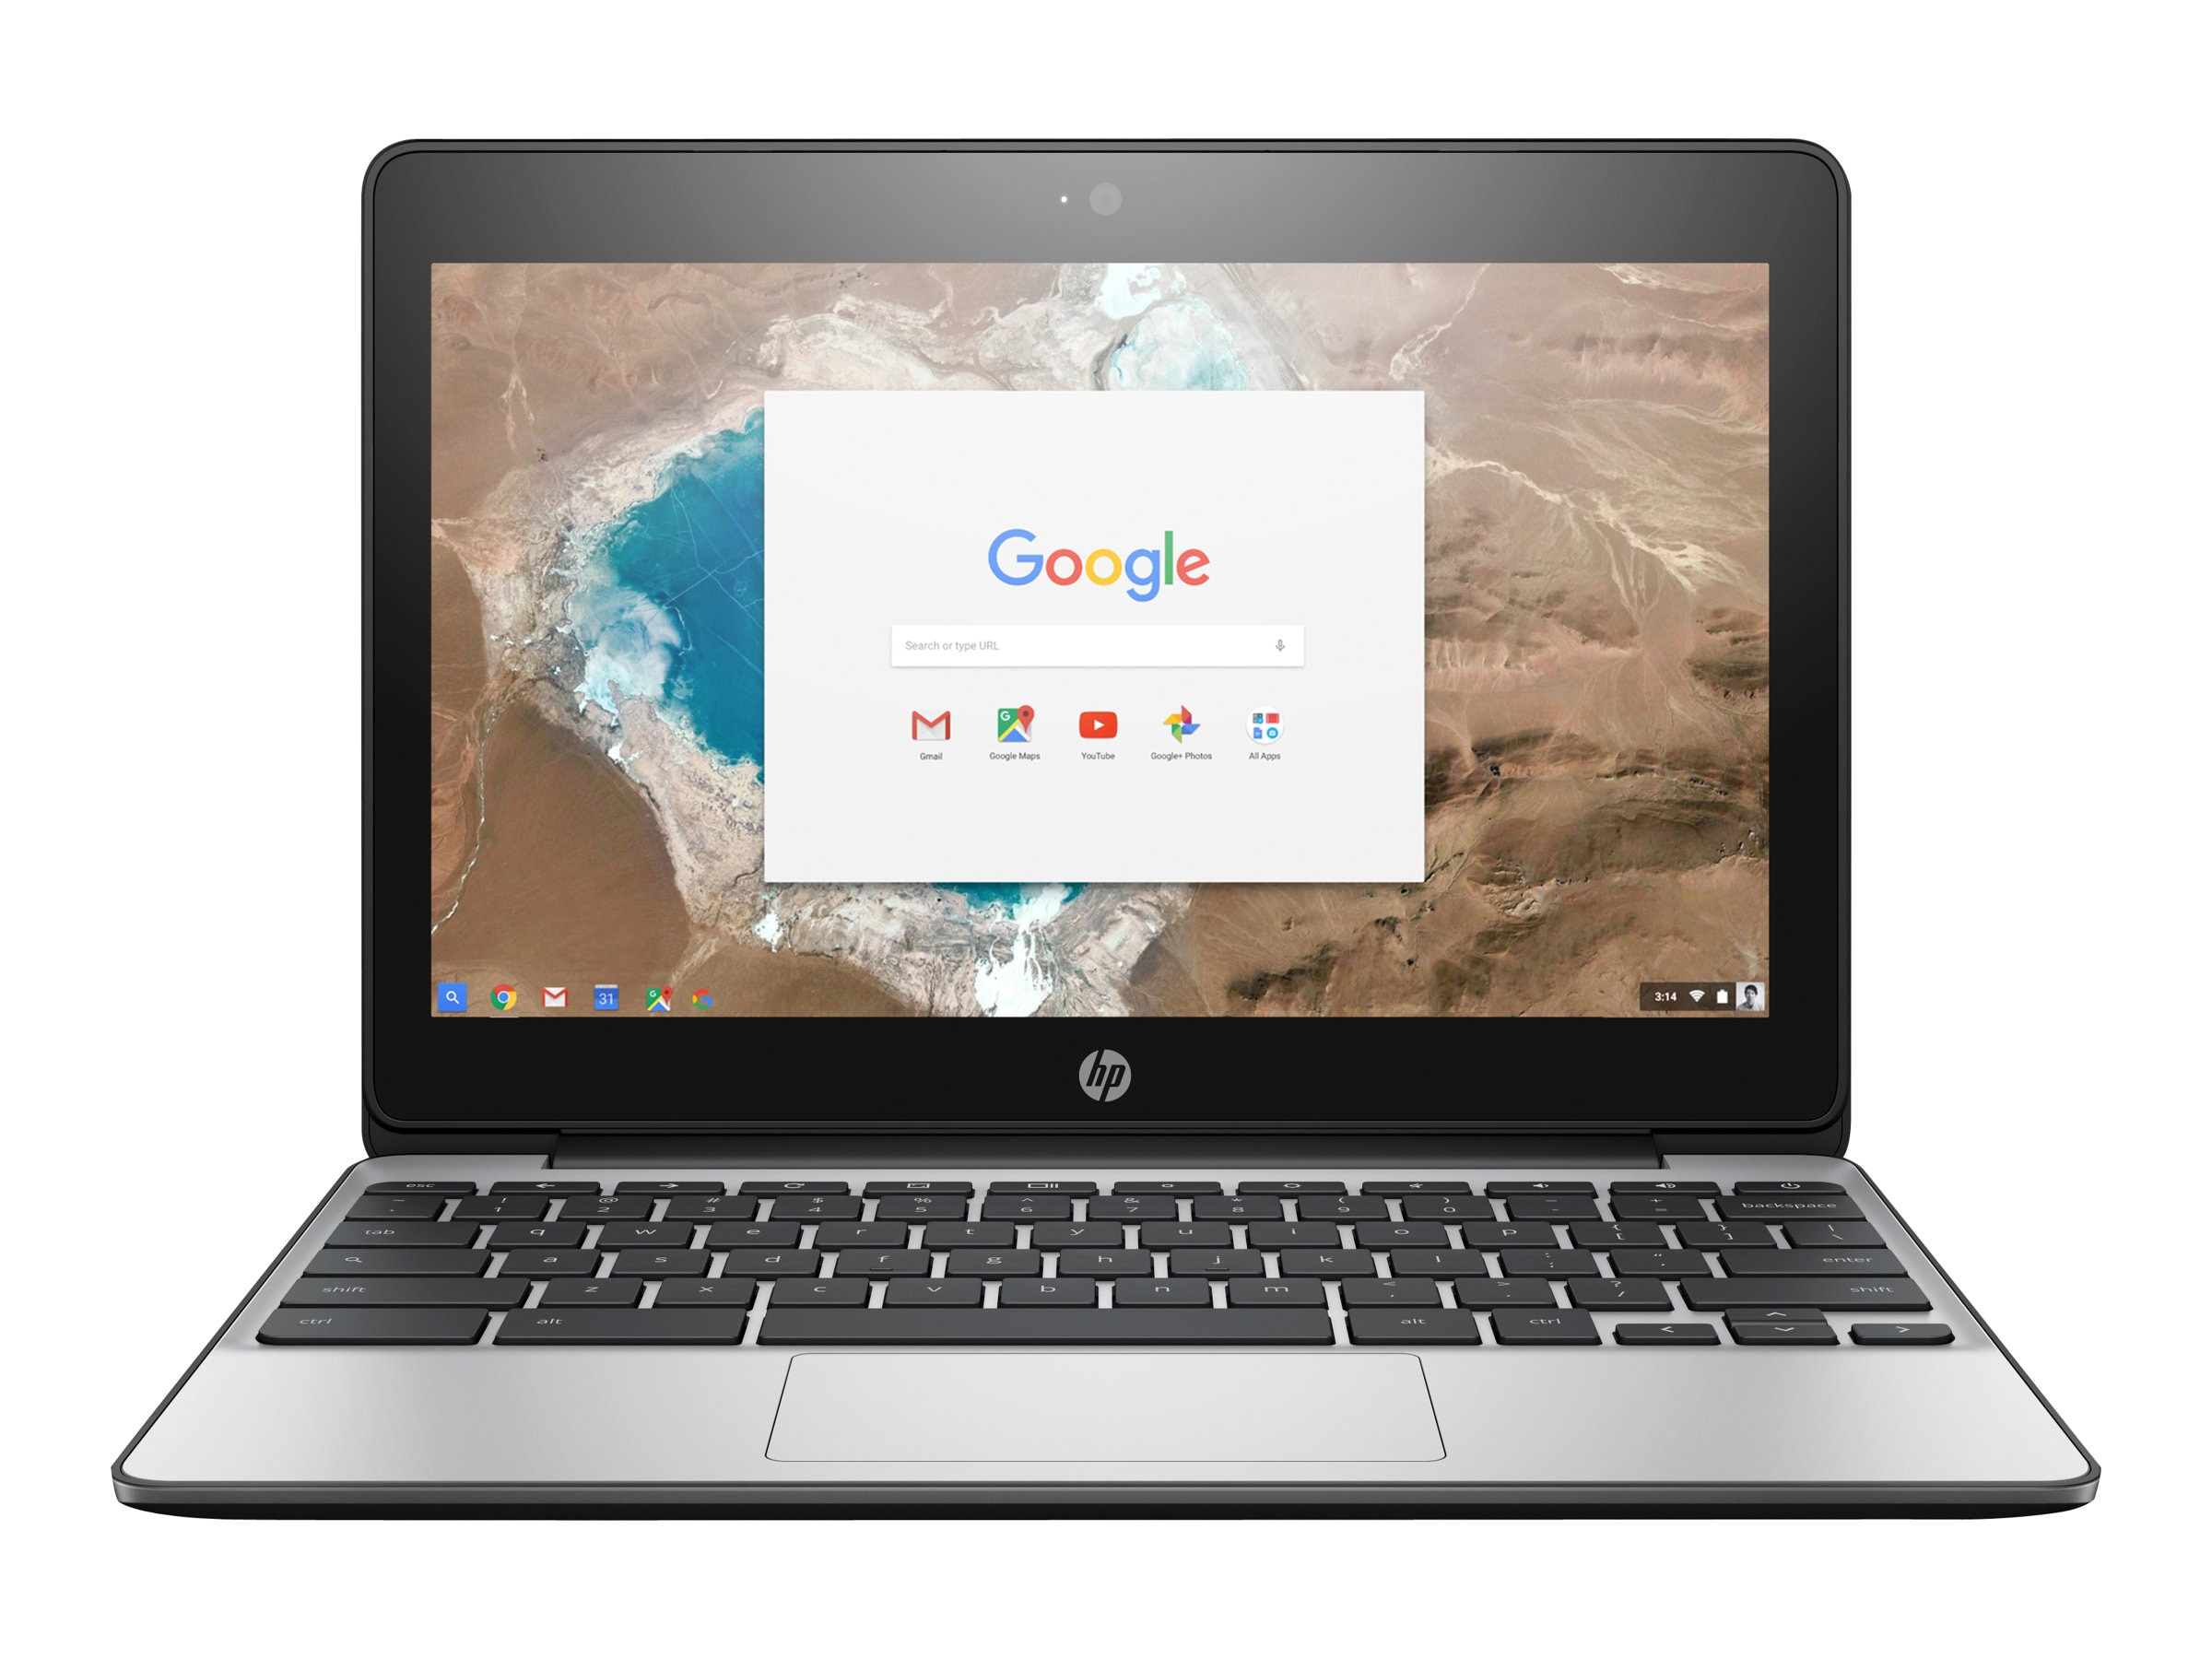 HP Chromebook 11 G4 EE 2.16GHz Celeron 11.6in display, V2W31UT#ABA